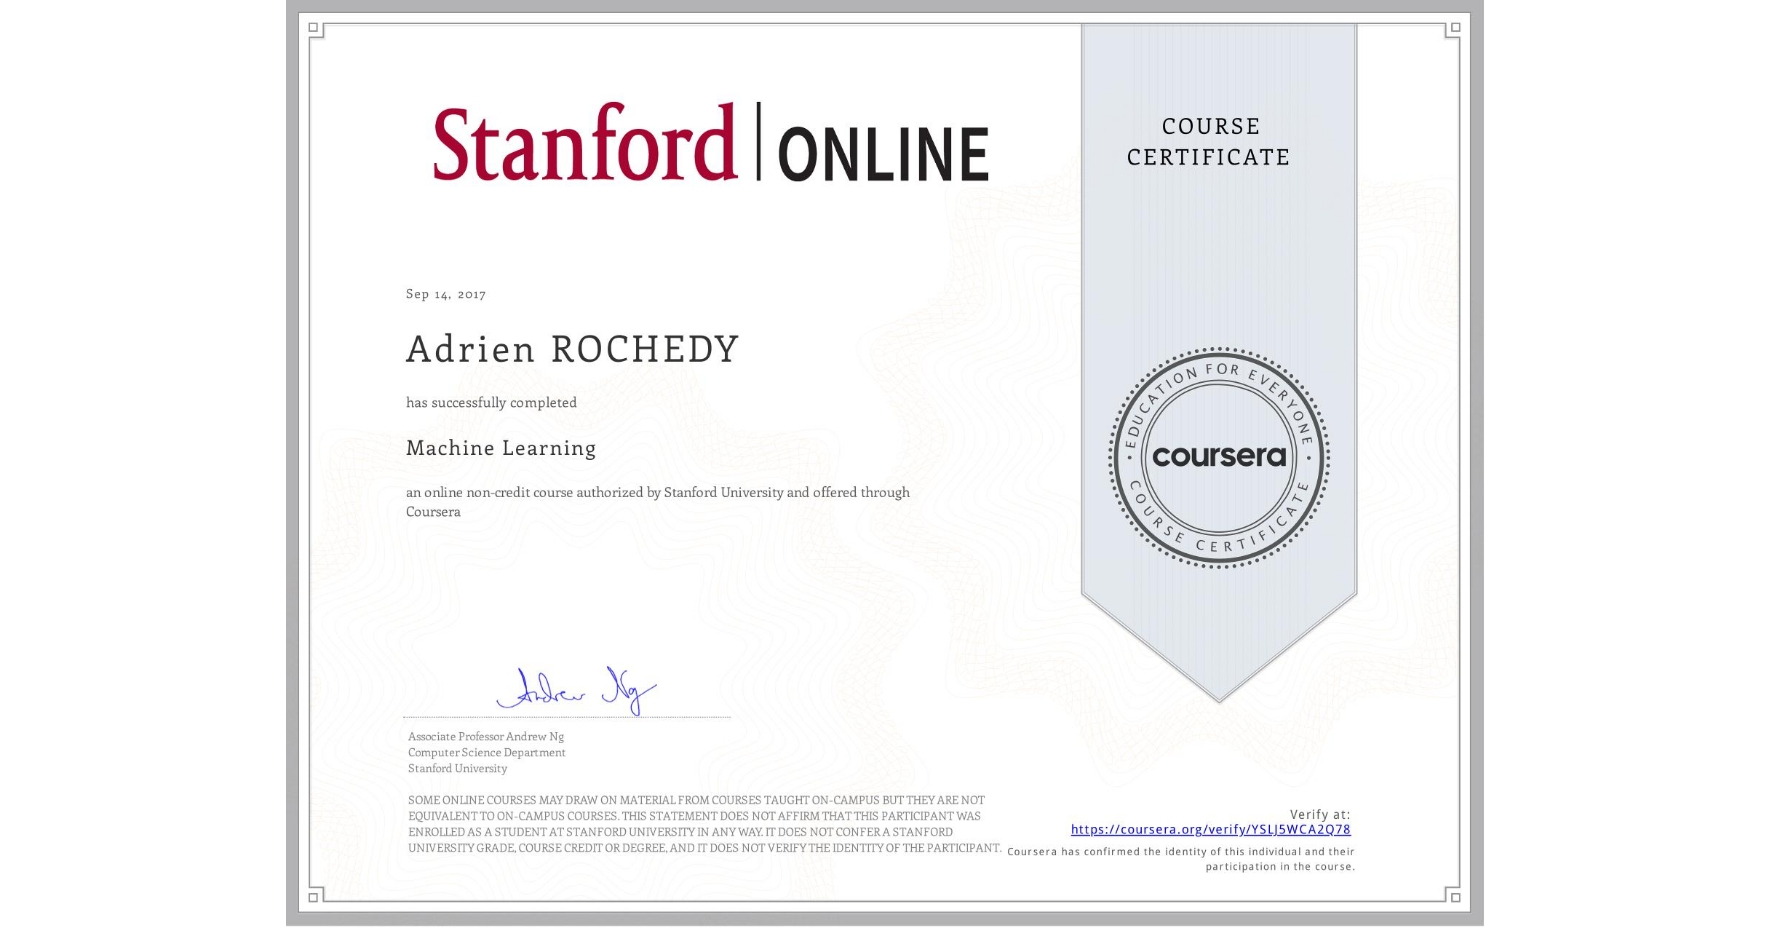 View certificate for Adrien ROCHEDY, Machine Learning, an online non-credit course authorized by Stanford University and offered through Coursera